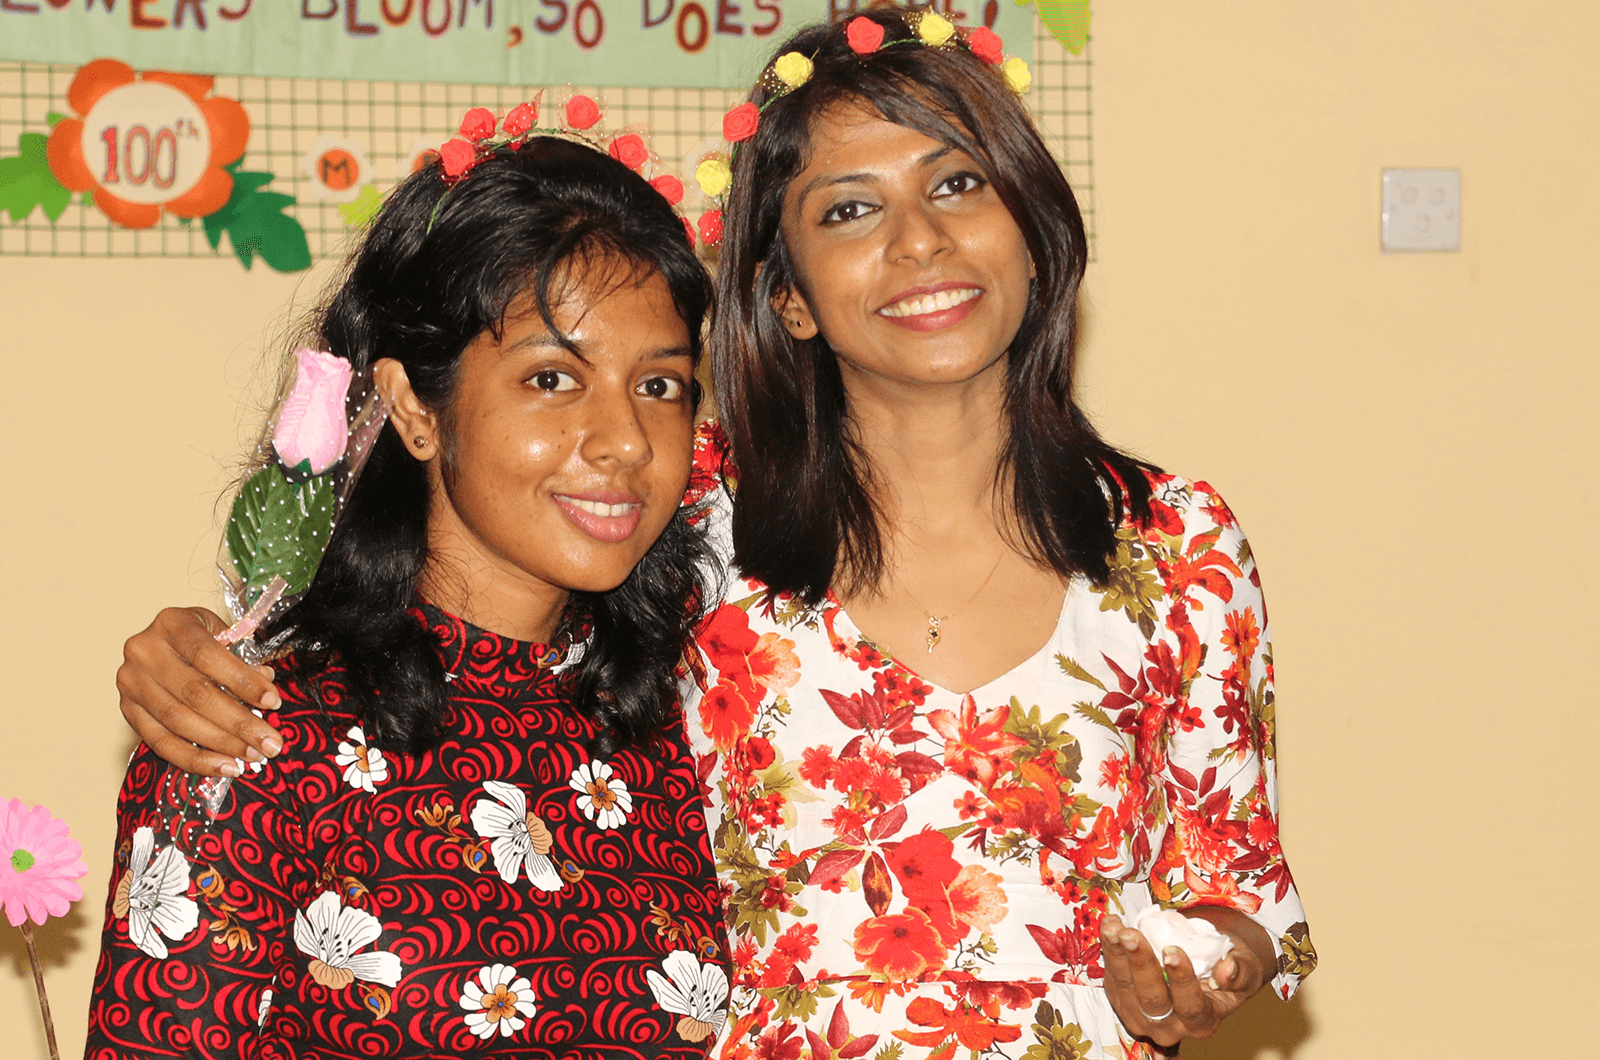 Two women smiling and posing